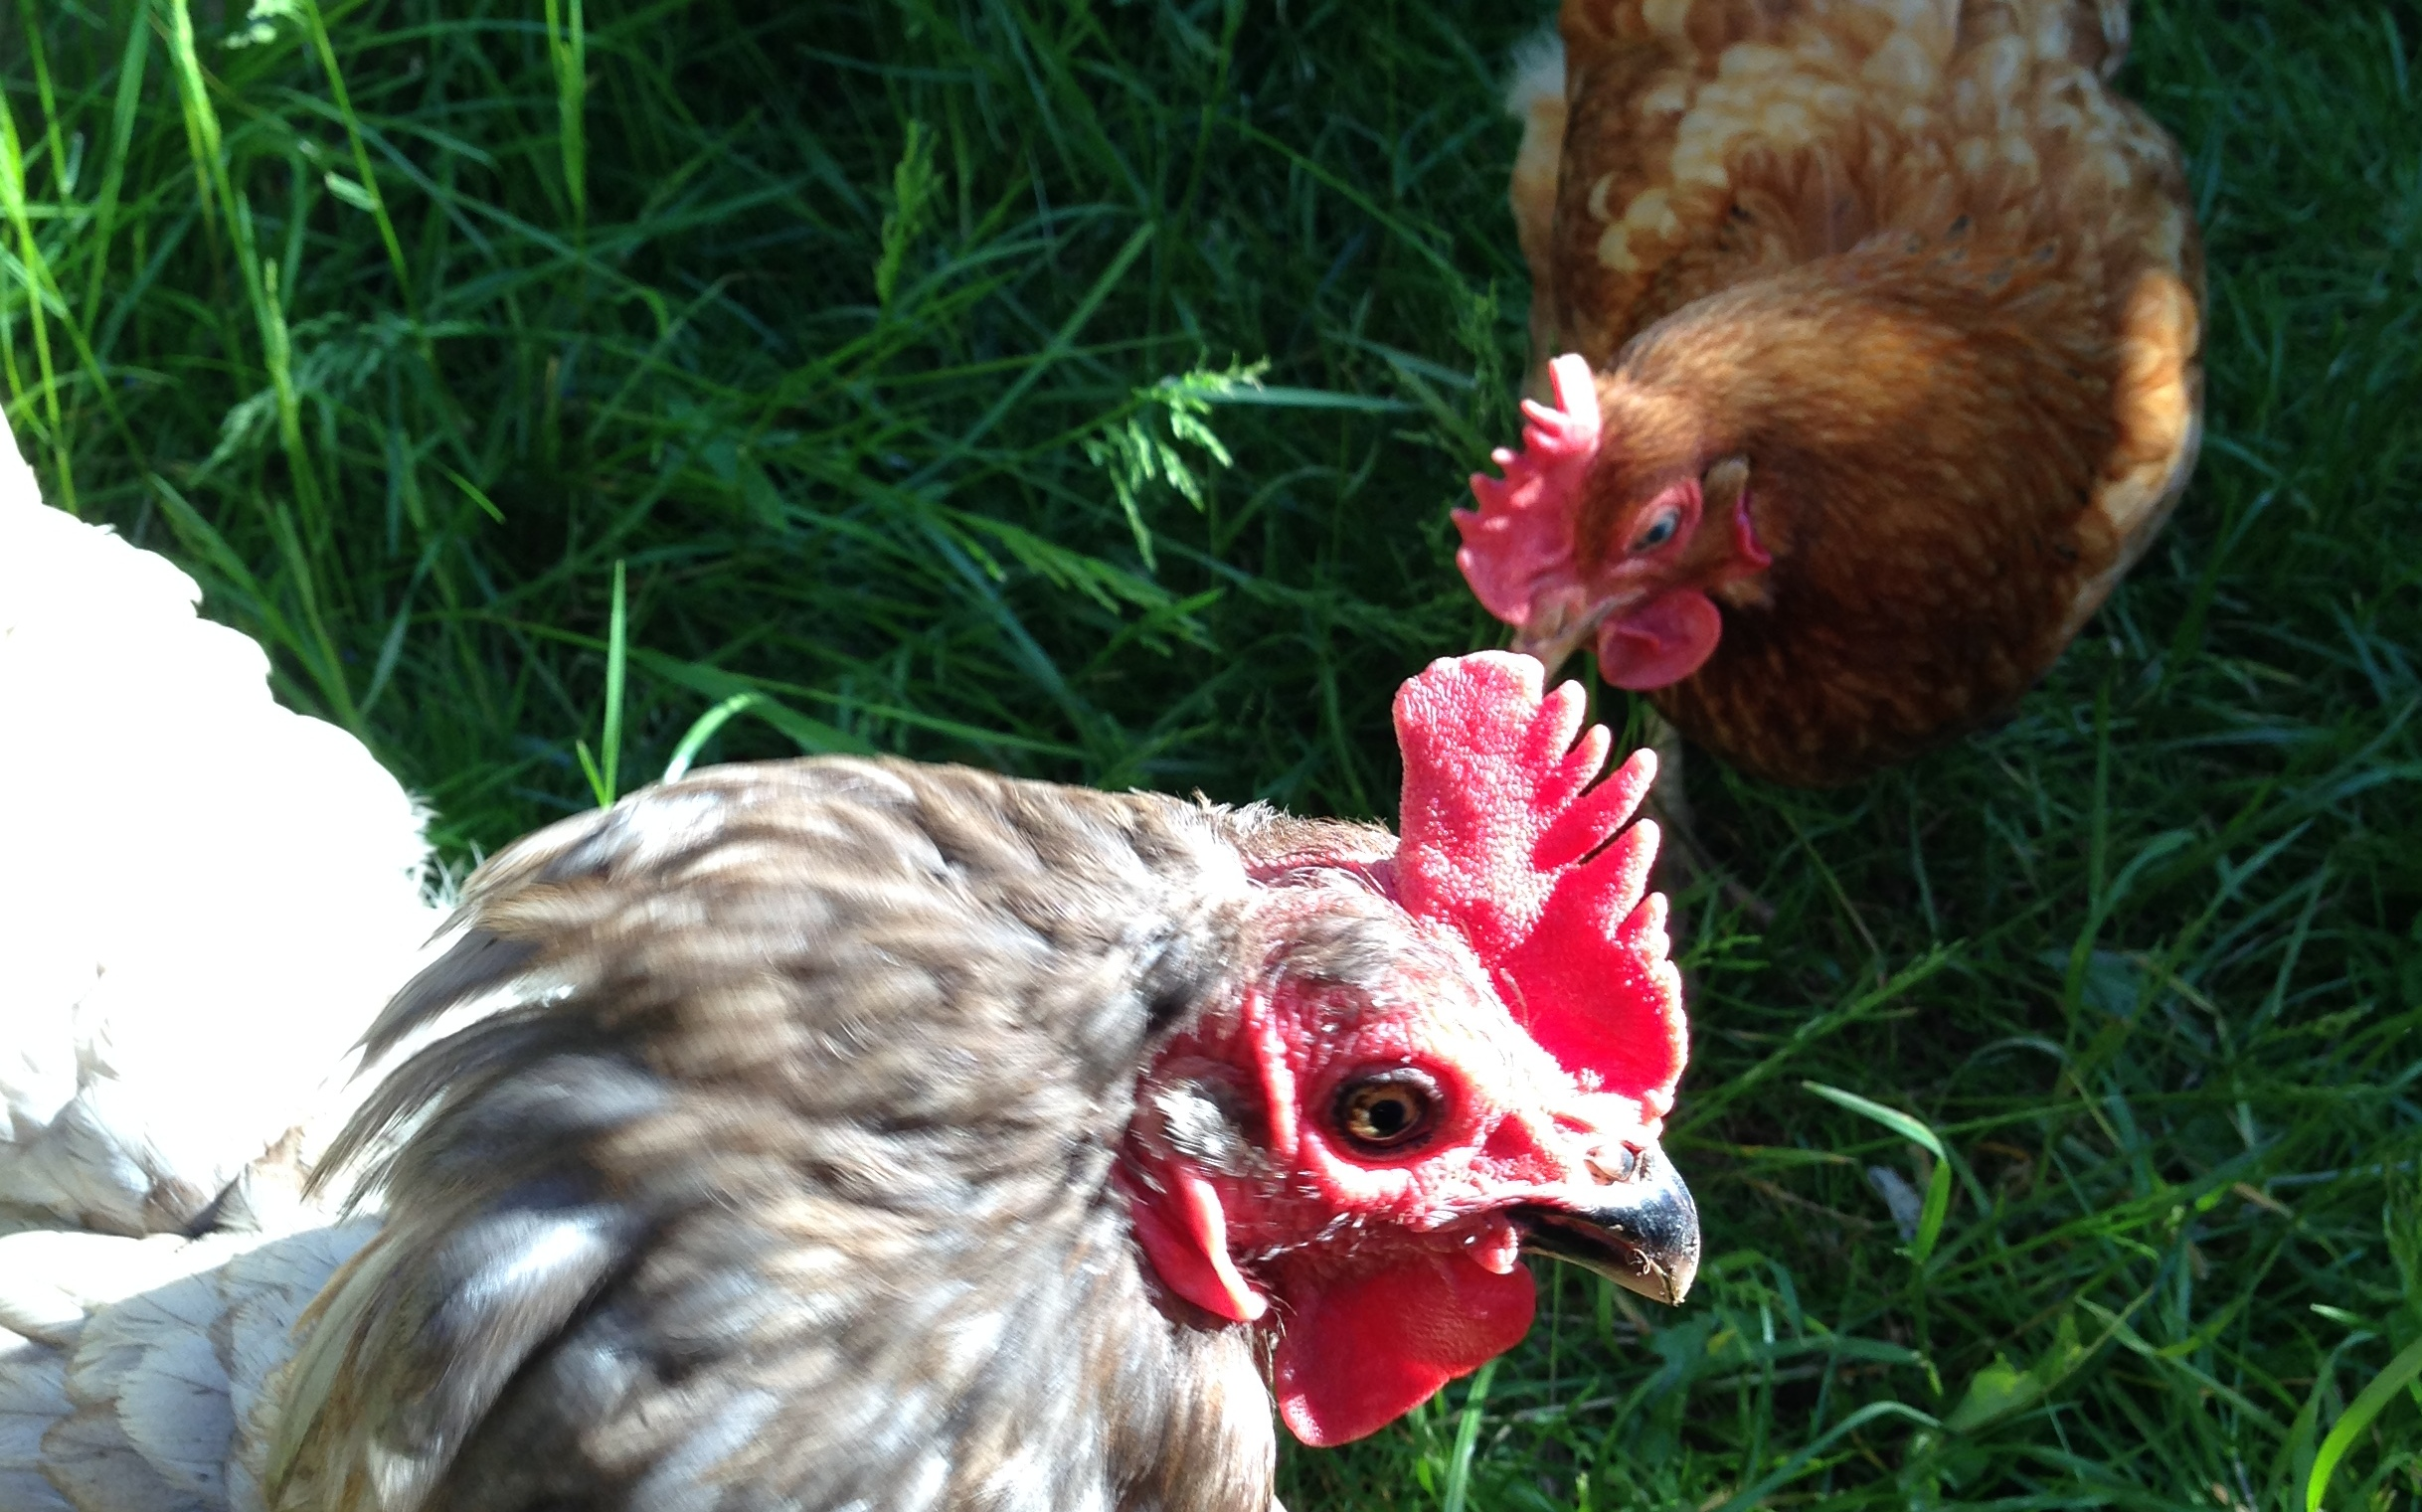 A day with the chickens